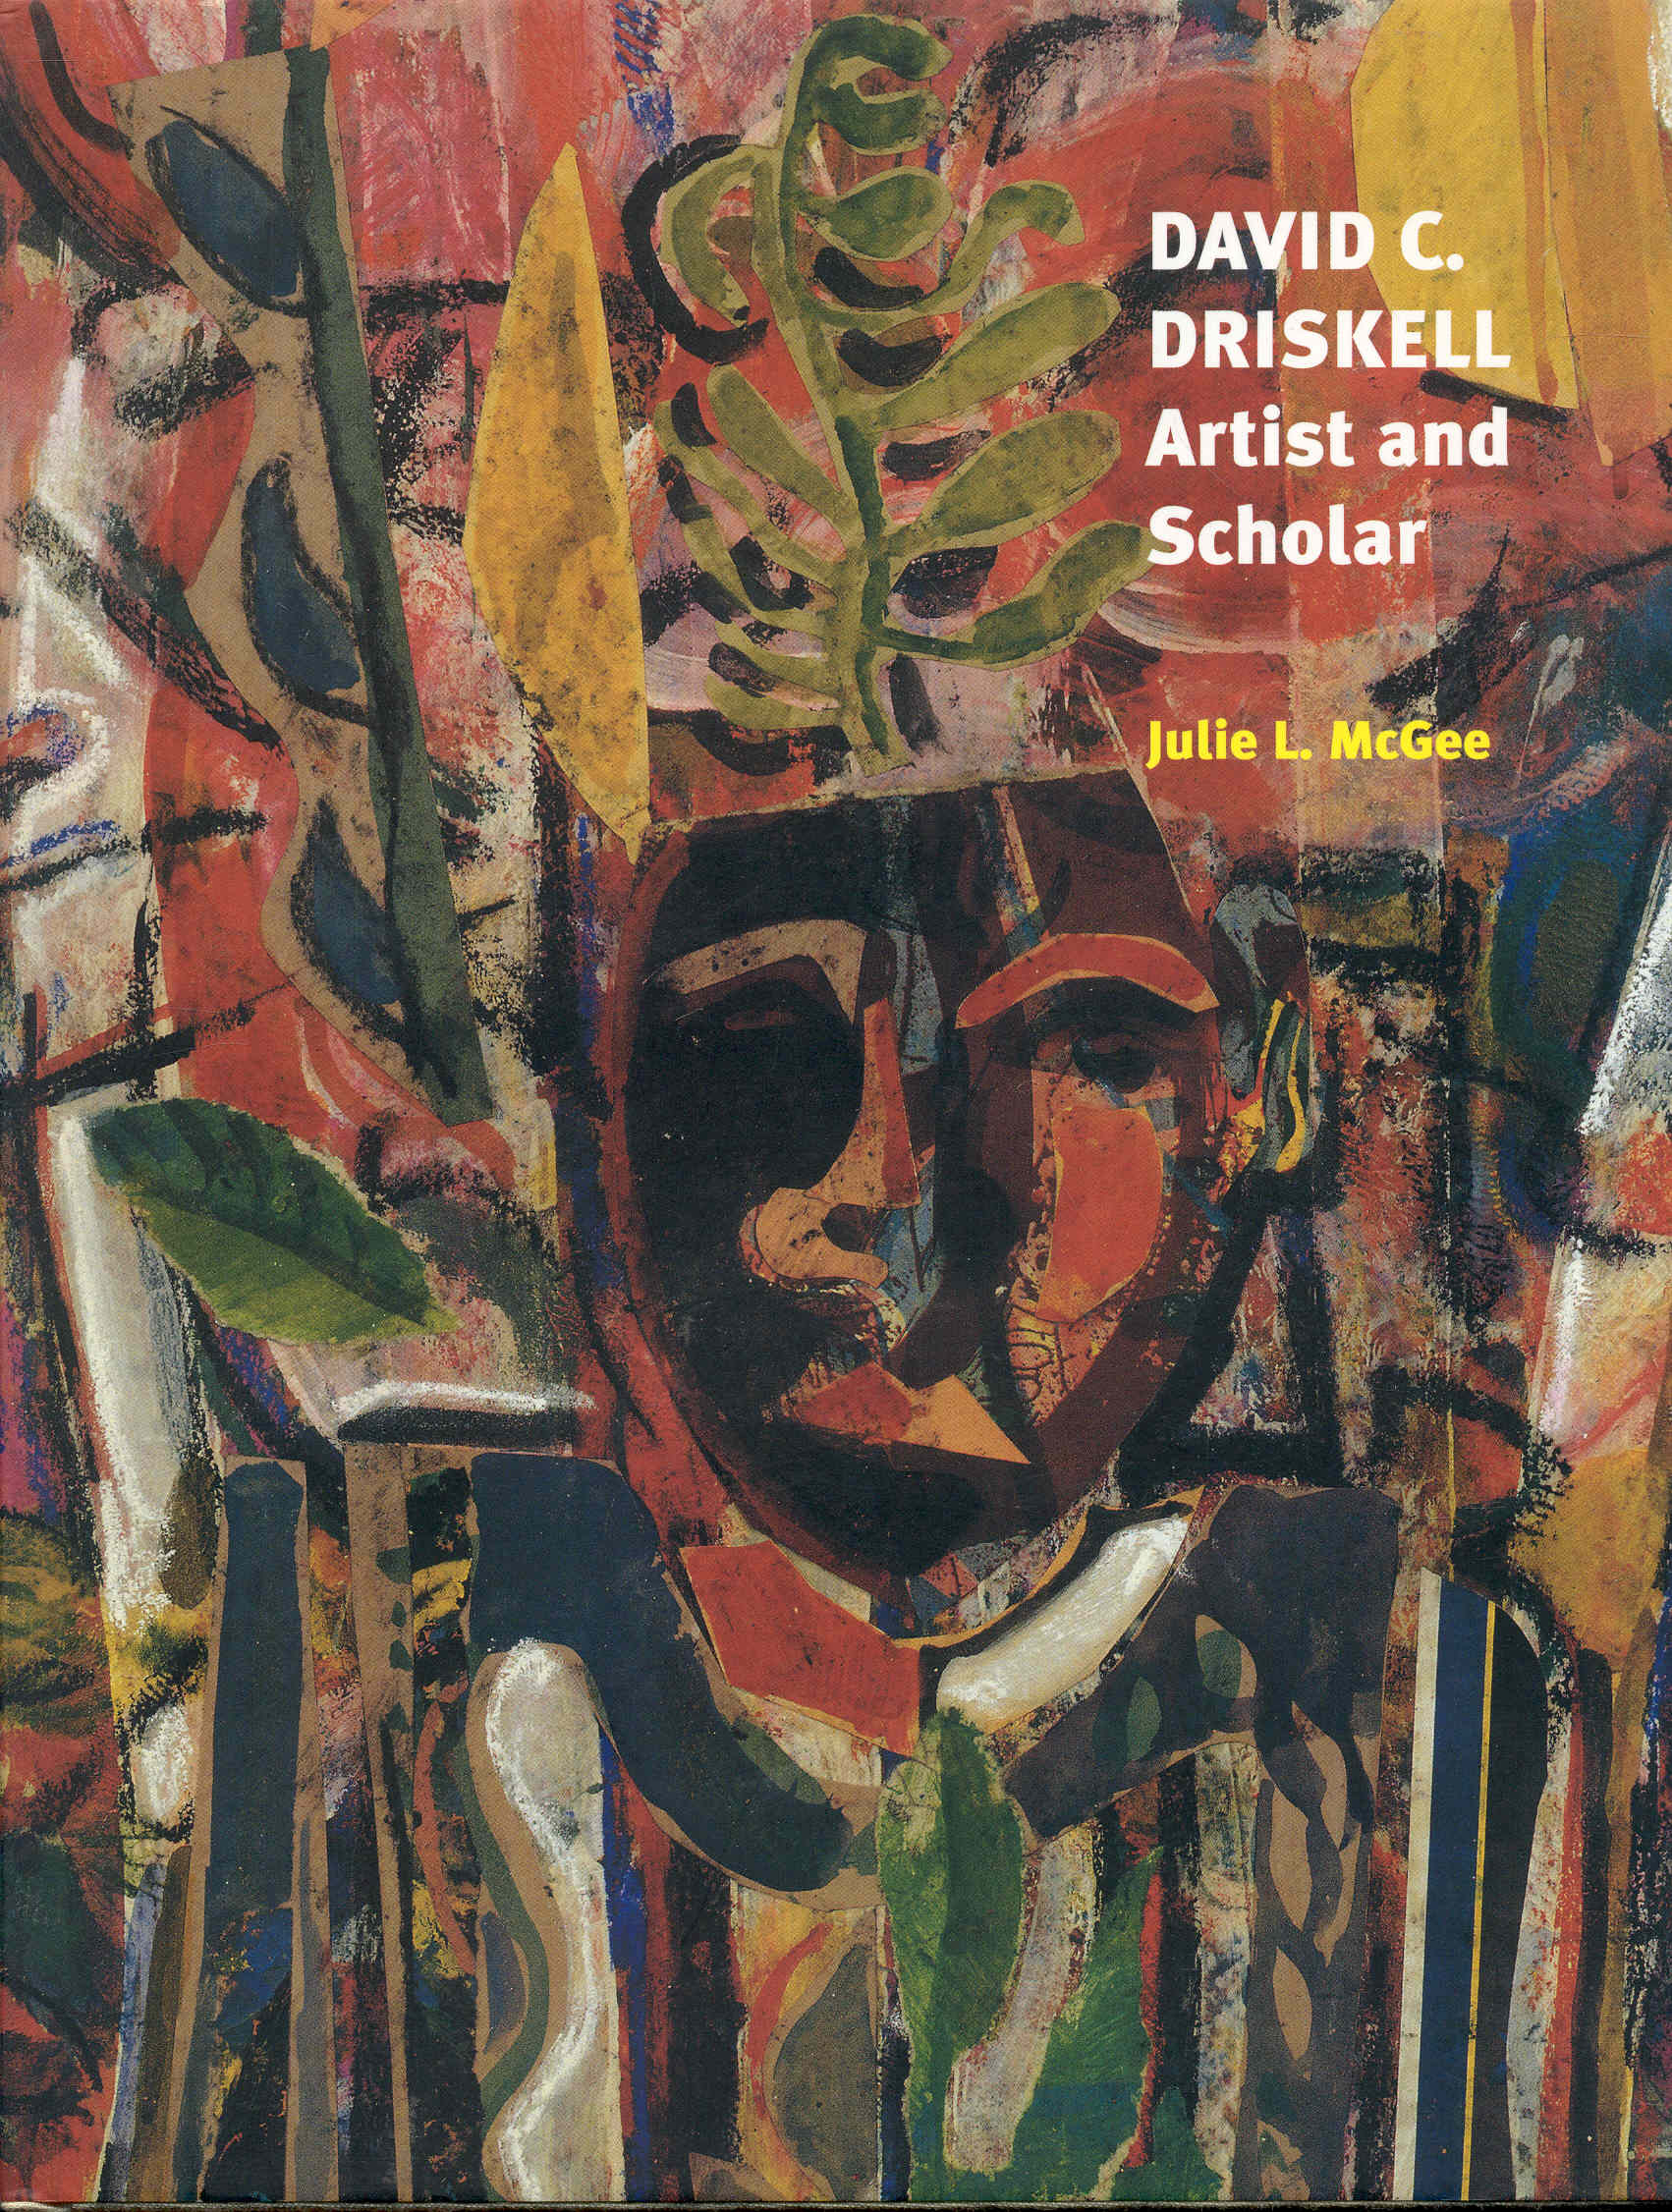 Image for DAVID C. DRISKELL: Artist and Scholar